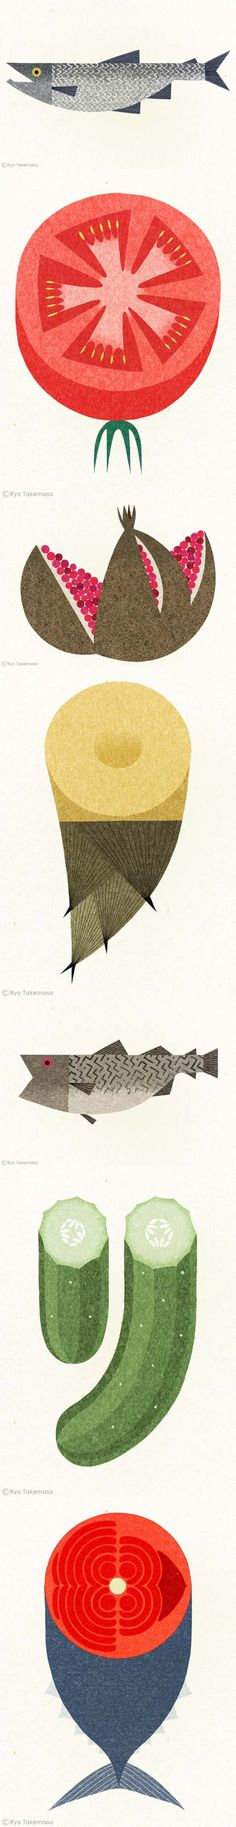 Illustrator: Ryo Takemasa